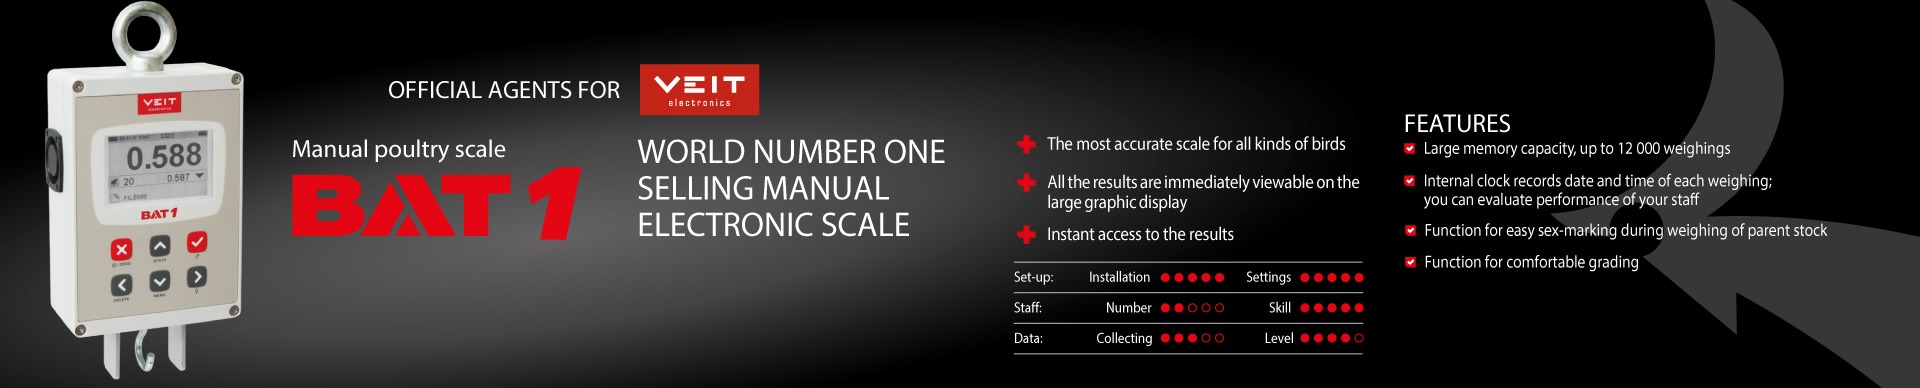 BAT 1 Manual Poultry Scale. World Number one selling manual electric scale